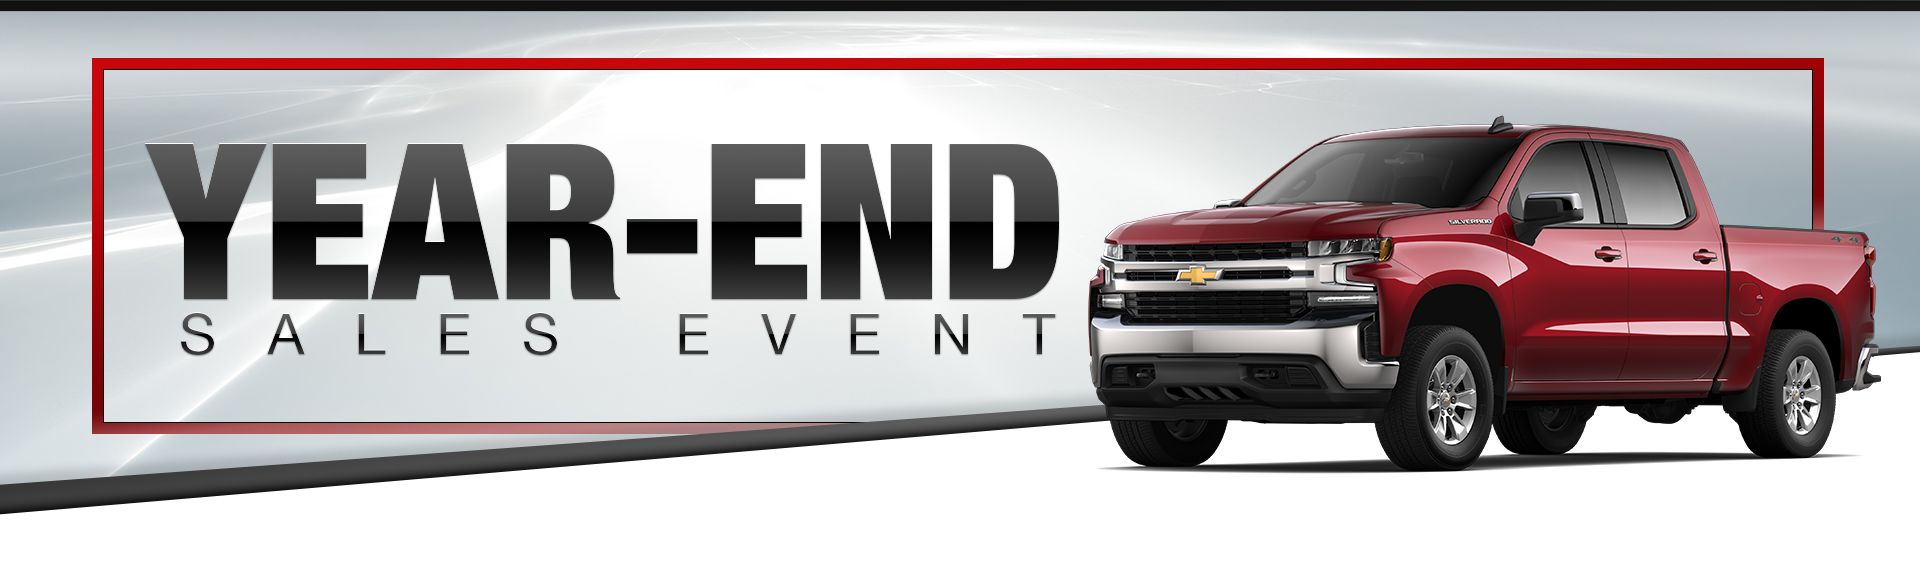 Year End Sales Event